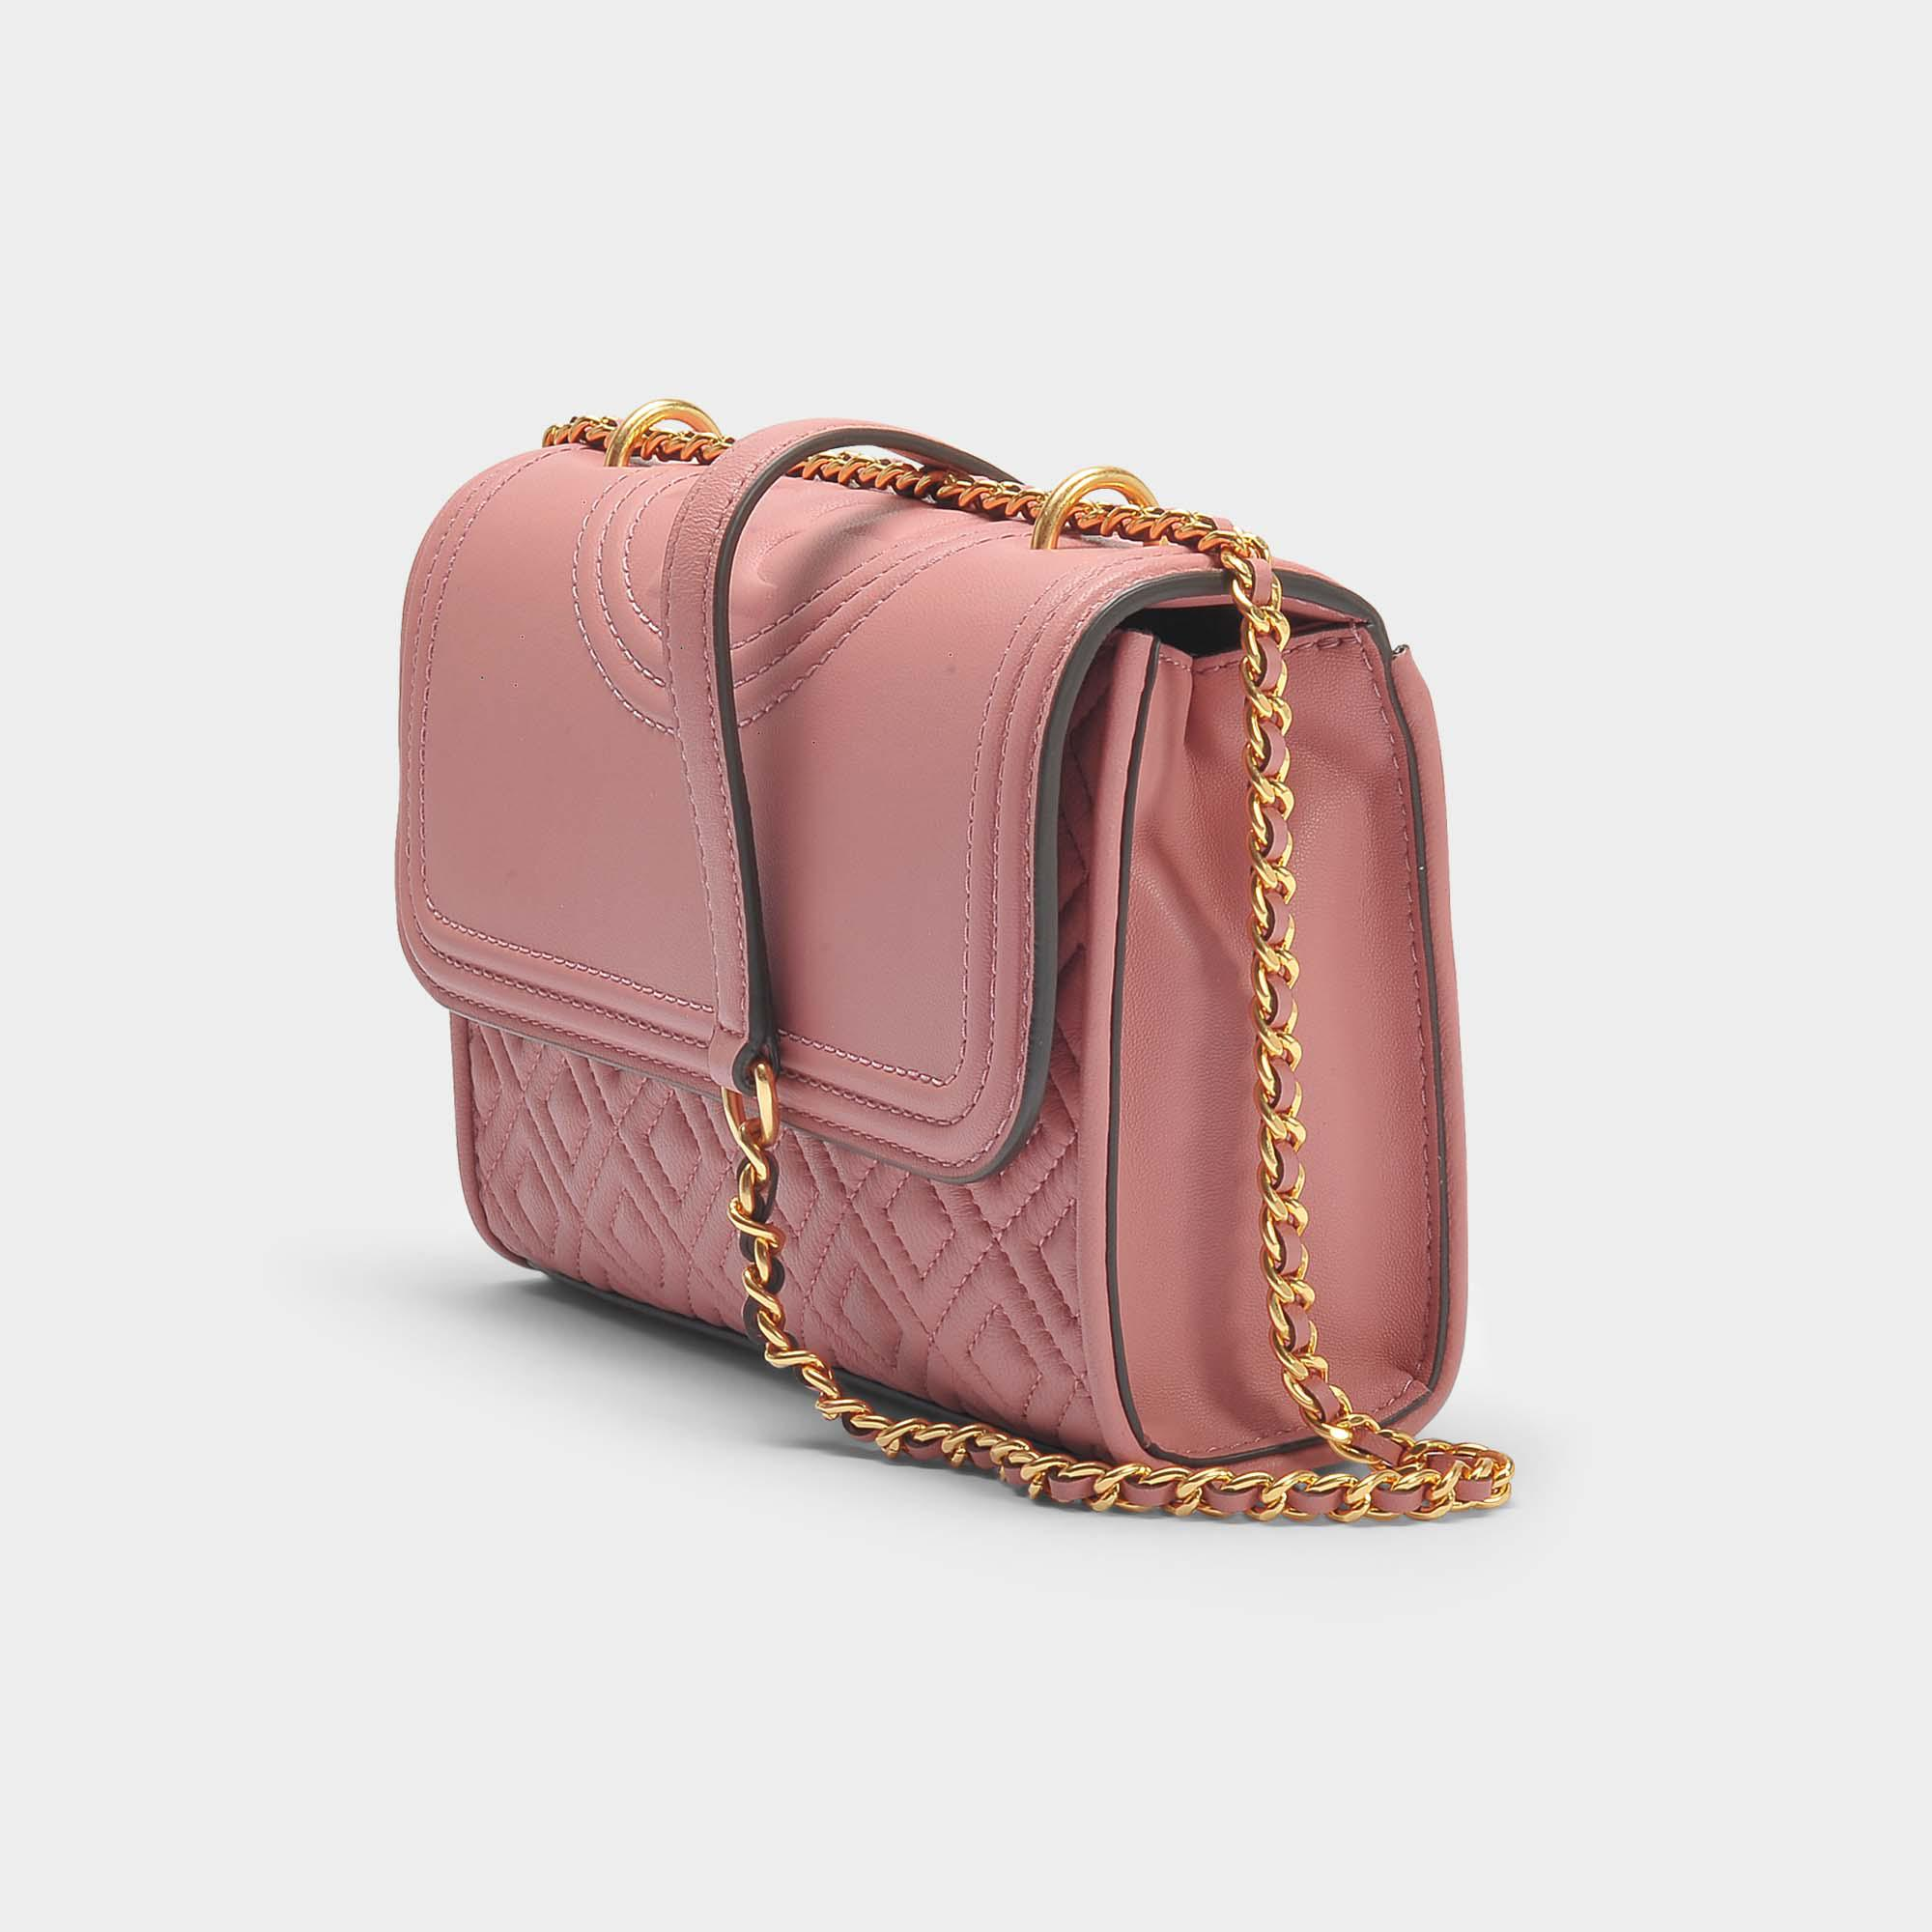 d0803294300 Tory Burch Fleming Small Convertible Shoulder Bag In Pink Magnolia ...